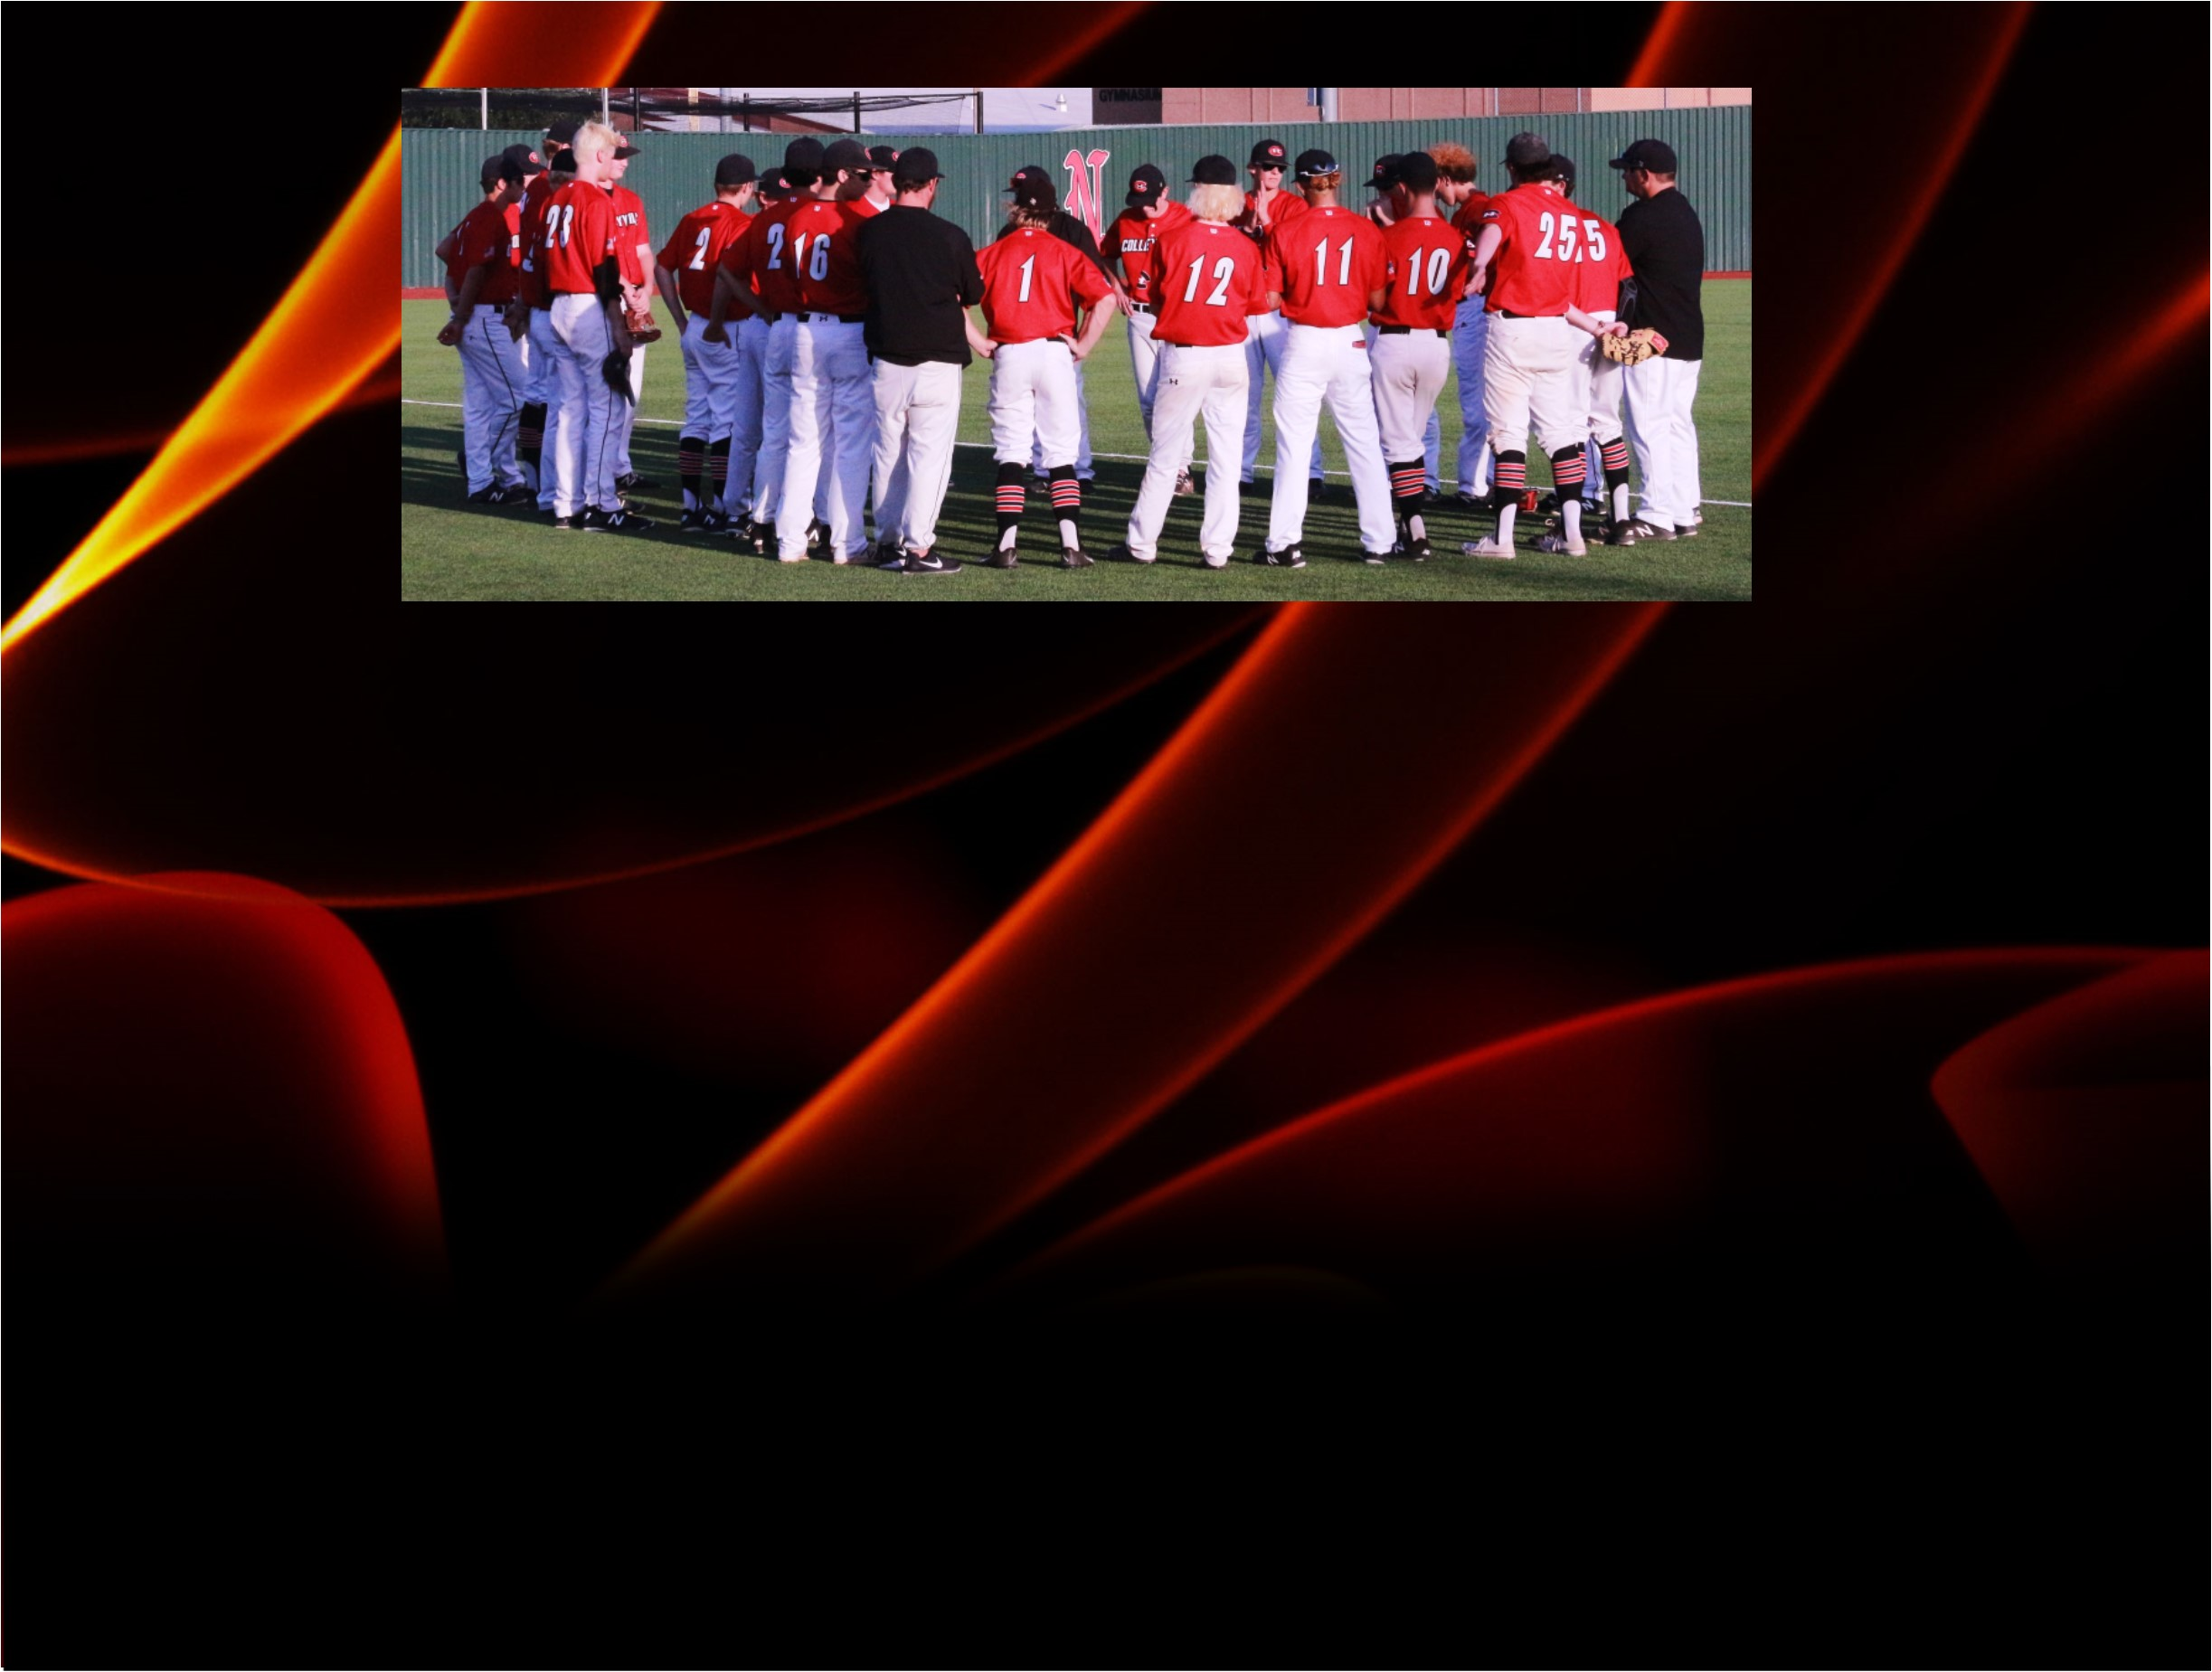 Colleyville Loses First Game of Area Playoff to Aledo